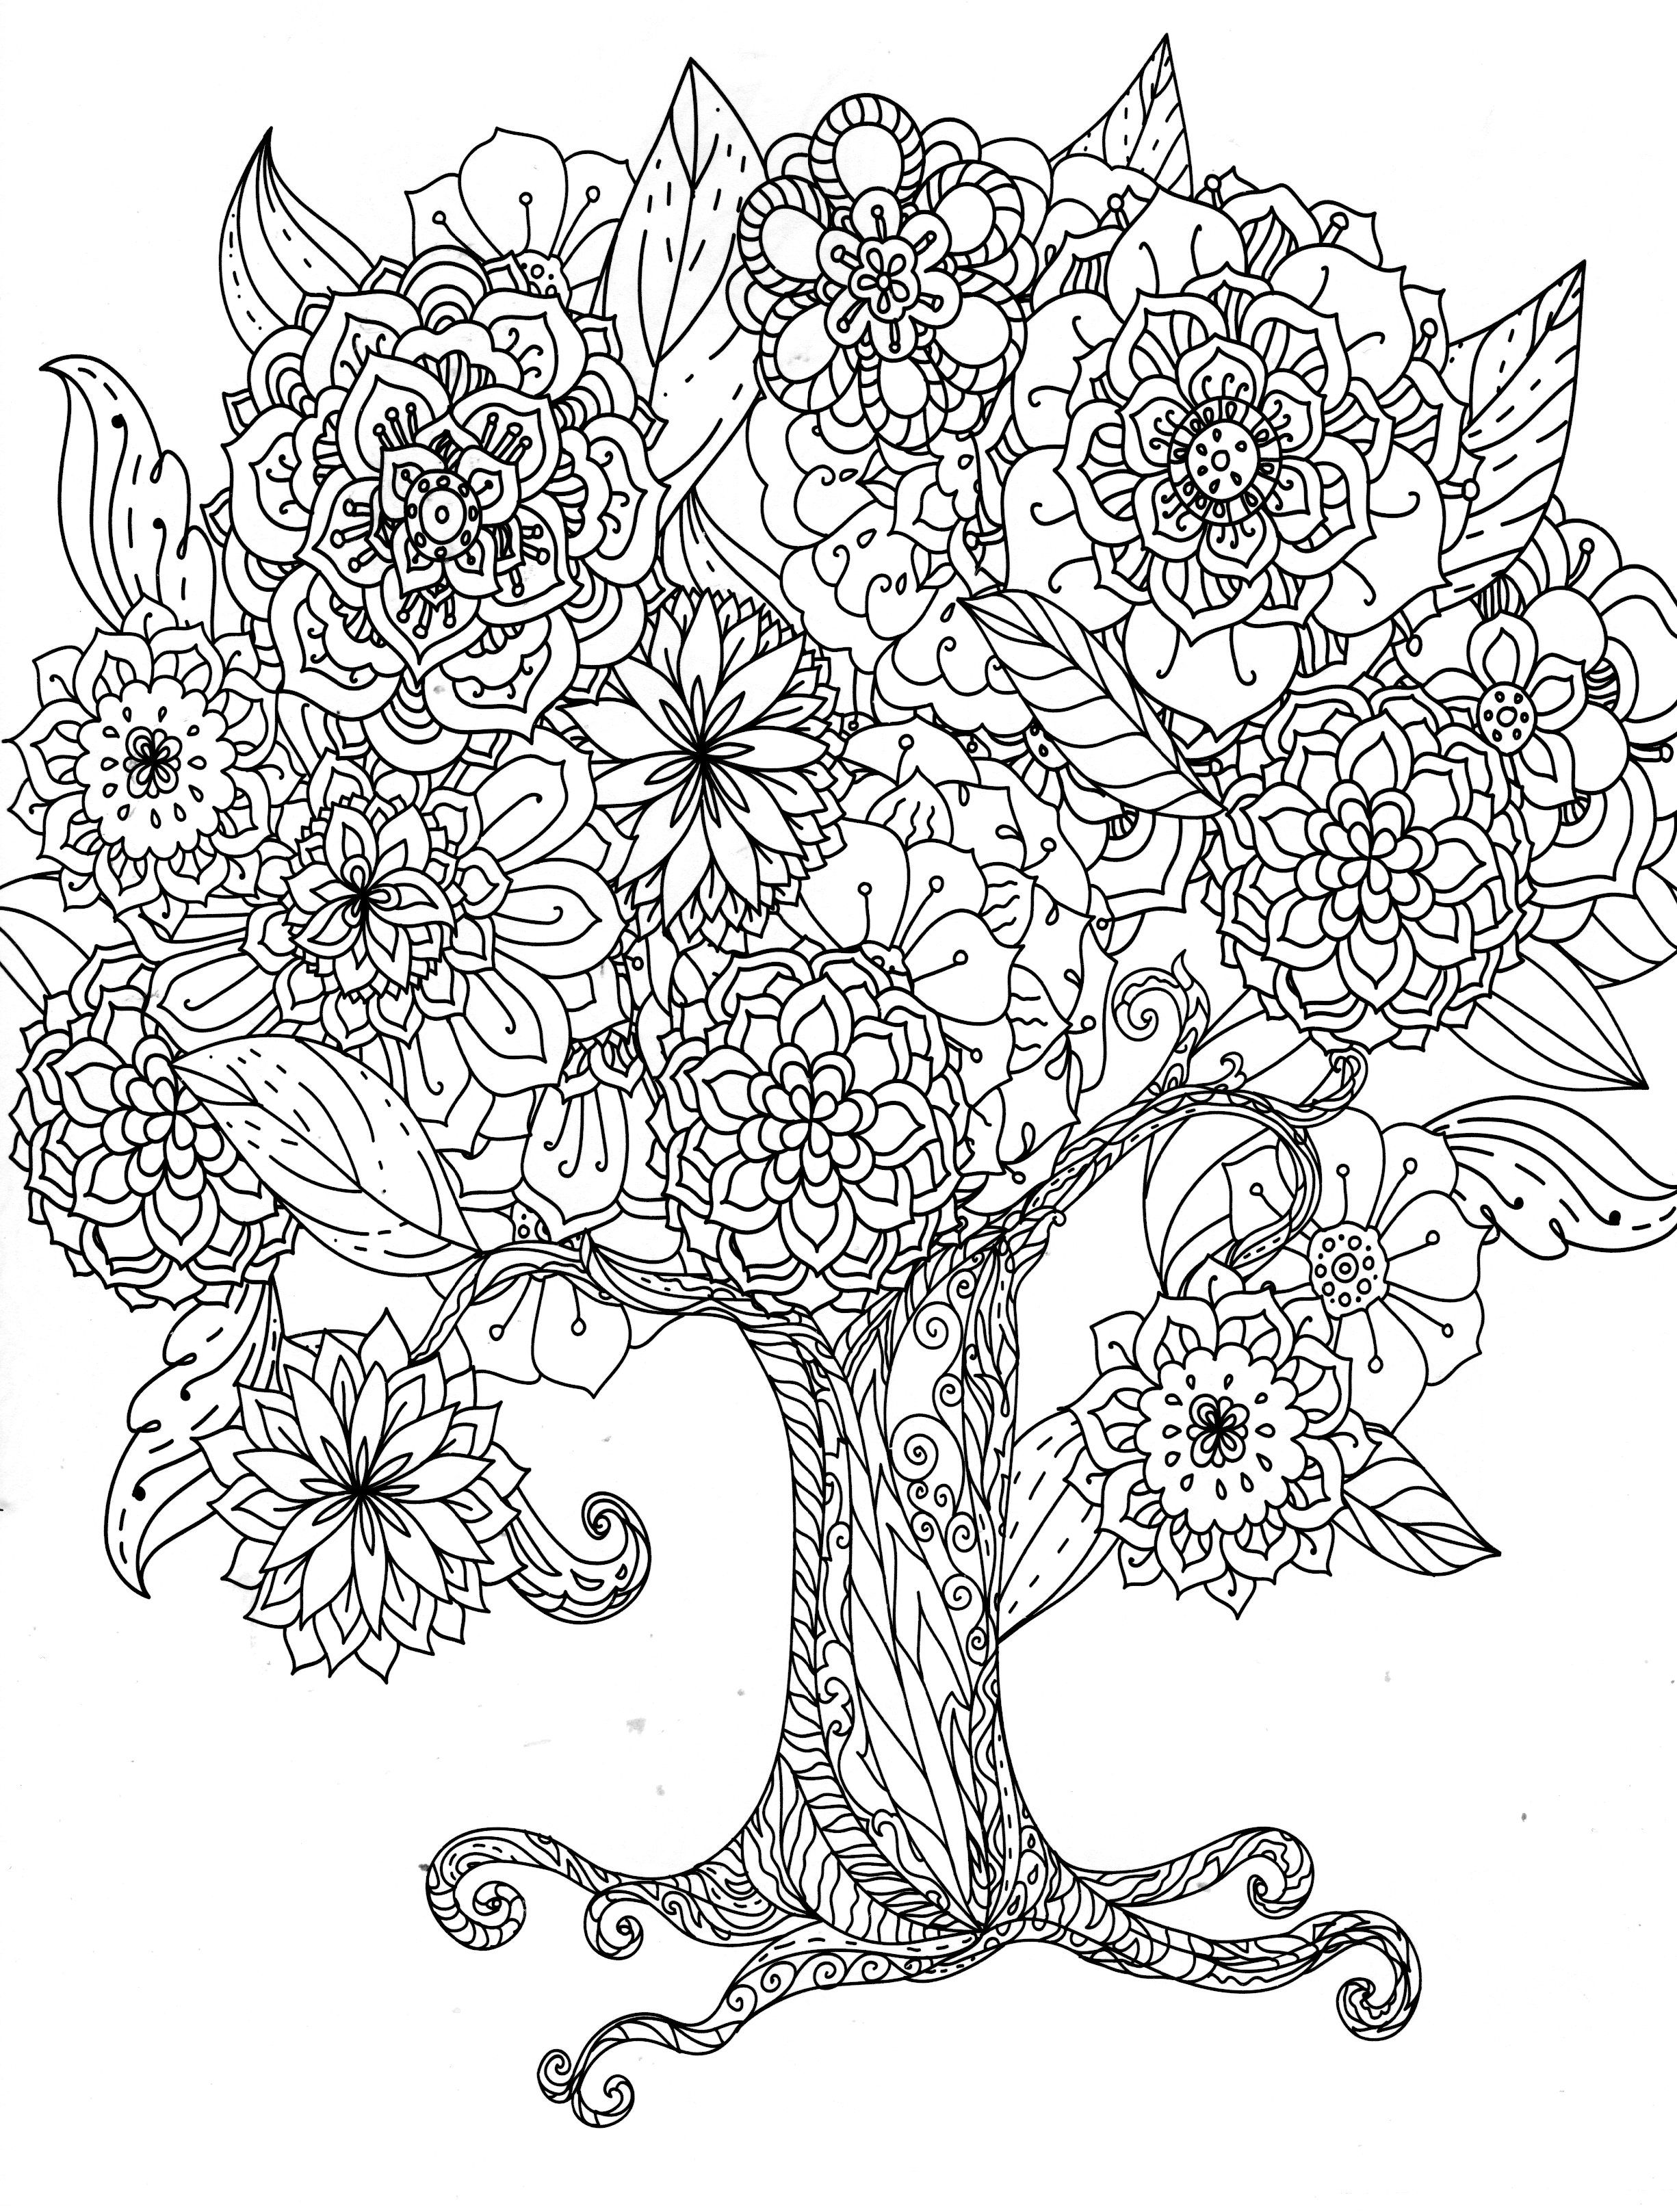 Pin by Jasna S. on Coloring Pages | Pinterest | Mandalas, Coloring ...